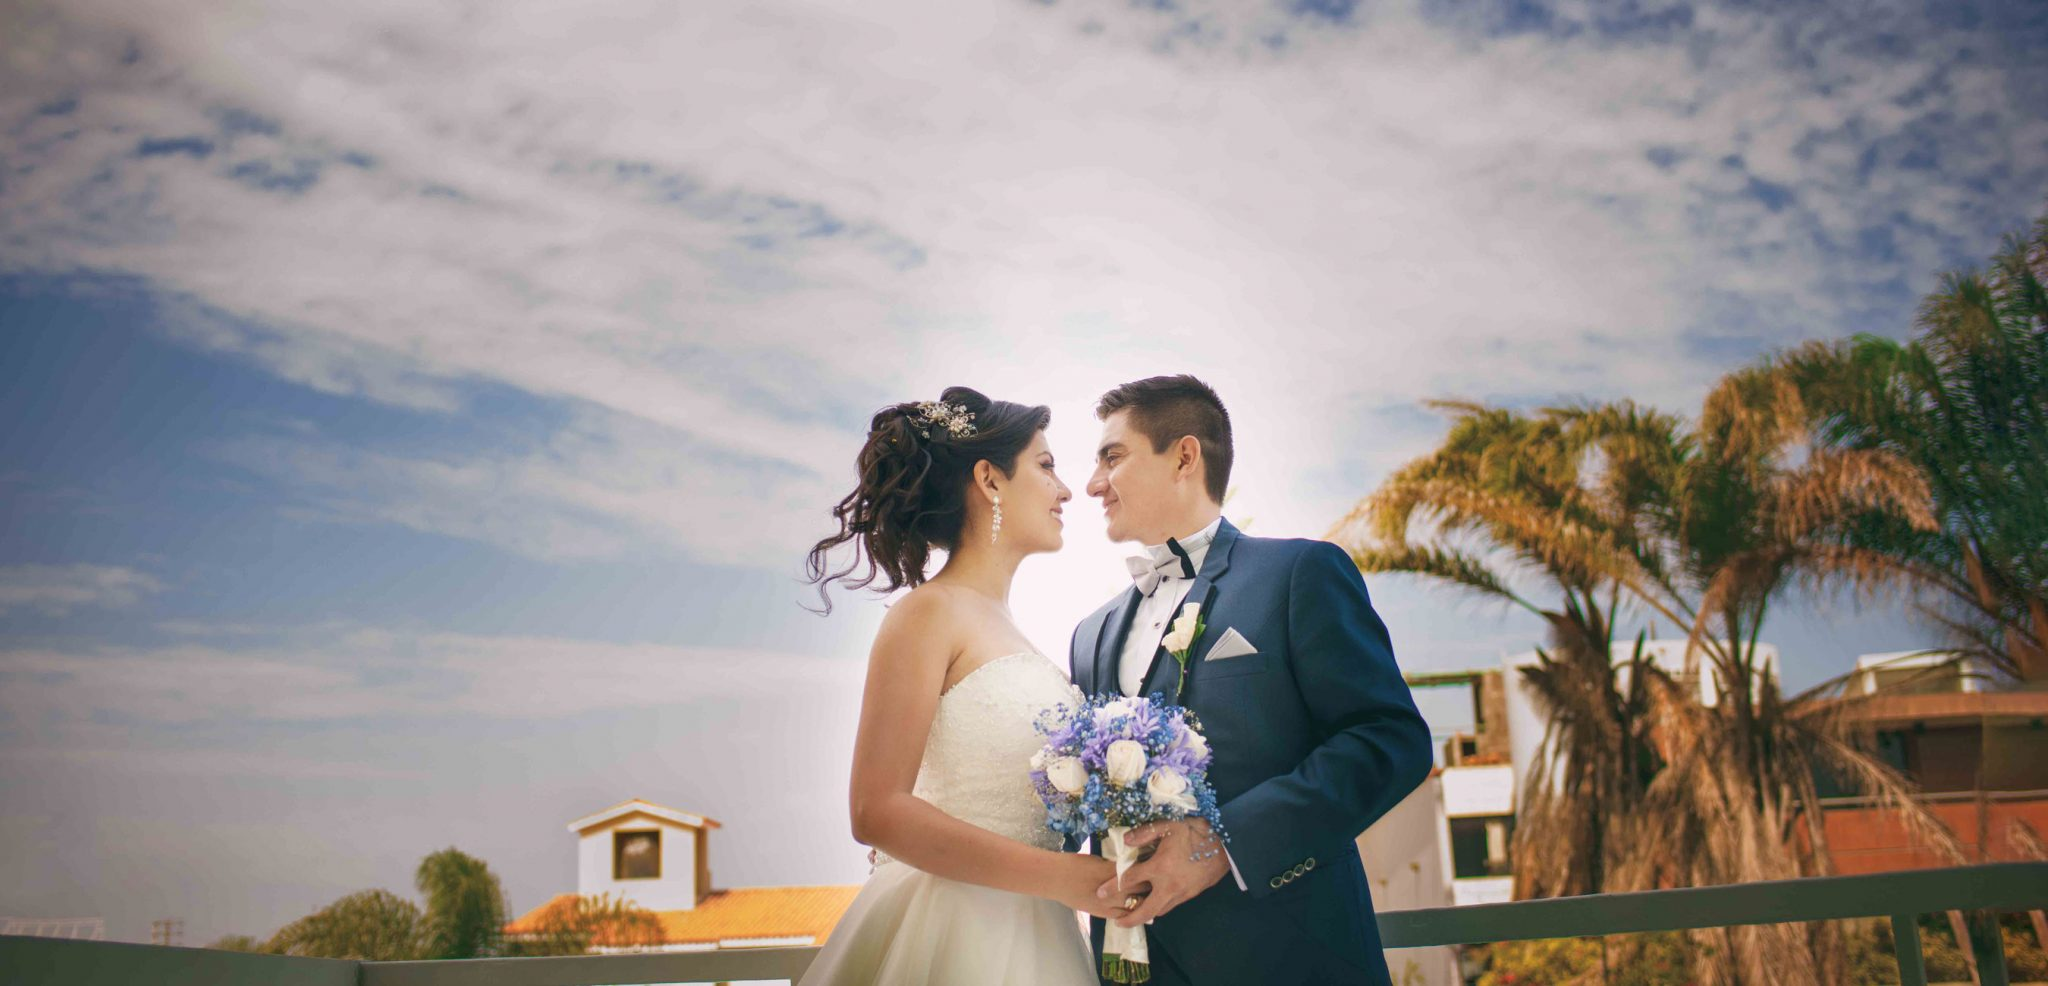 Boda de Cotty y Percy - Susana Morales